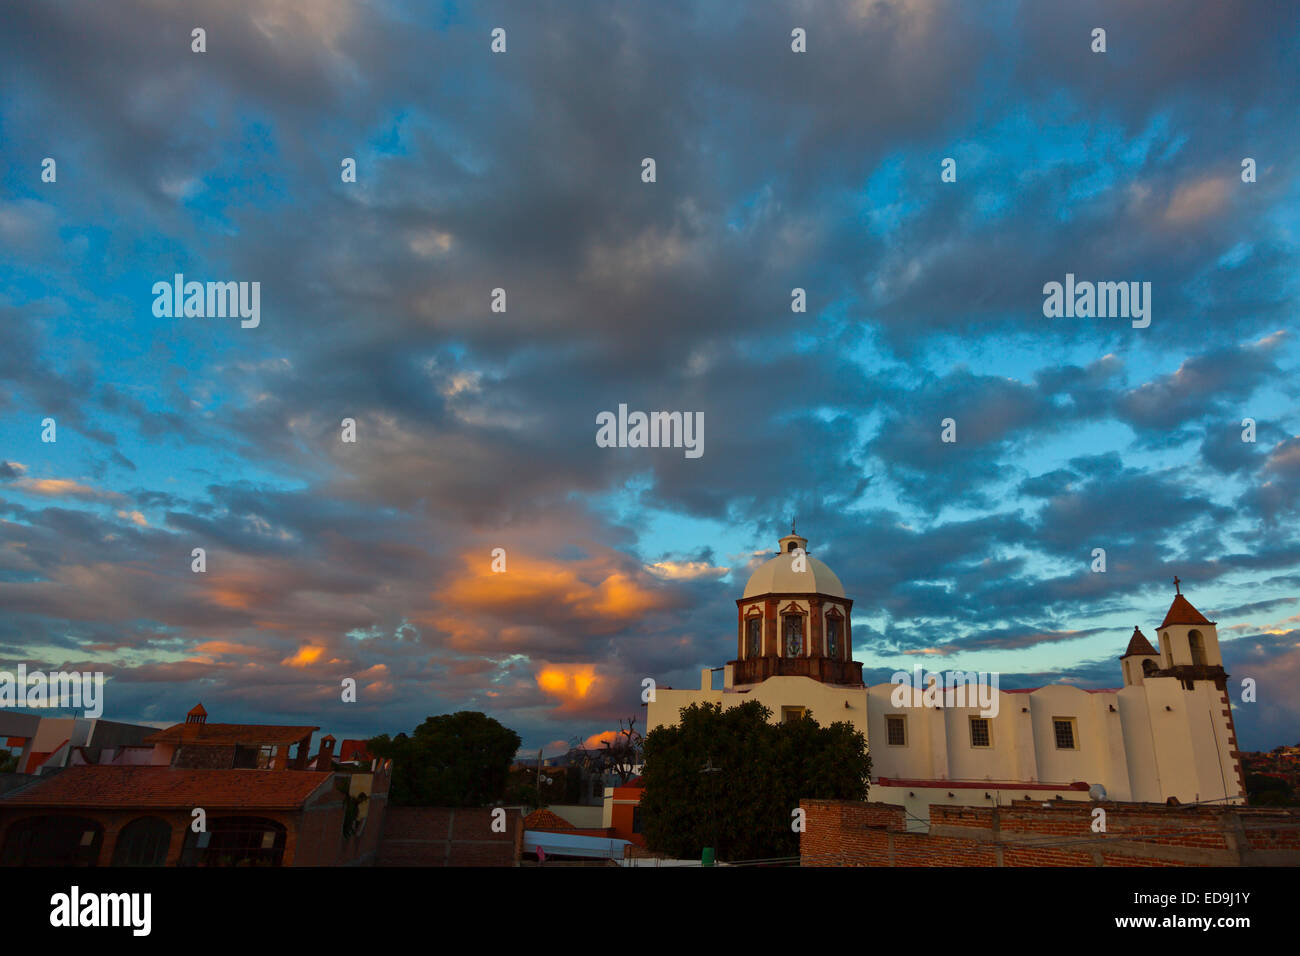 A magnificent SUNSET over the SAN ANTONIO CHURCH in SAN MIGUEL DE ALLENDE - MEXICO - Stock Image